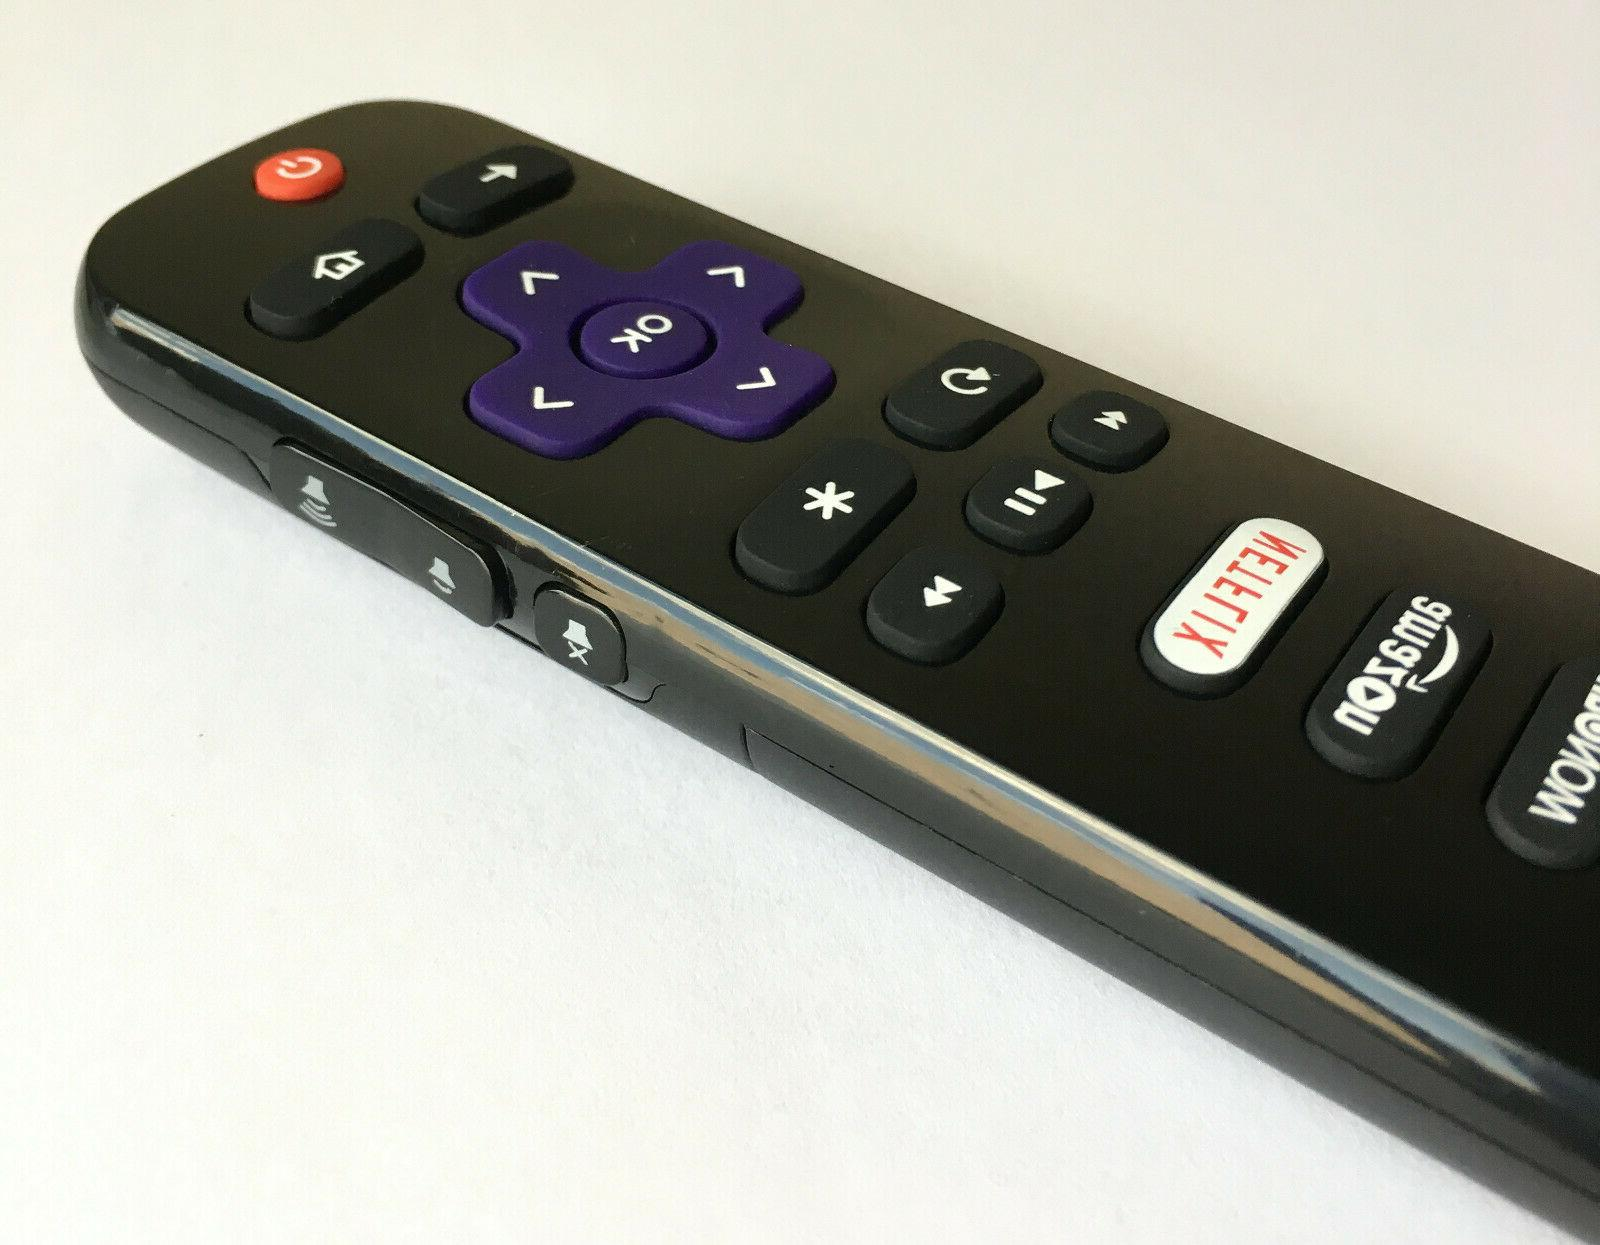 New RC280 Remote for TV with HBONOW Netflix Amazon